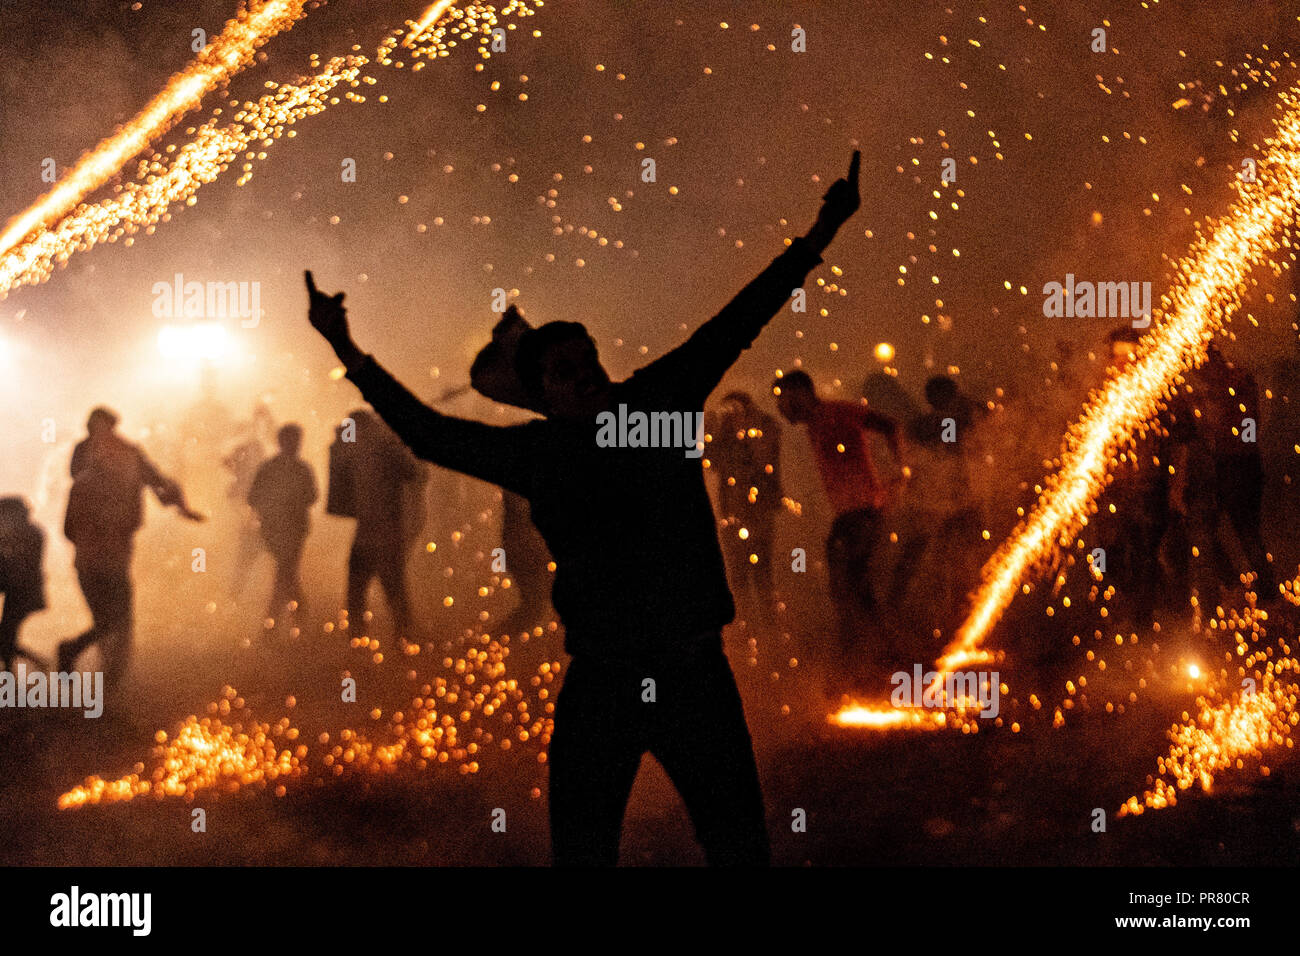 San Miguel de Allende, Mexico. 29th Sept 2018. A Mexican man celebrates as dozens of sky rockets explode around him in the chaos of the Alborada festival September 29, 2018 in San Miguel de Allende, Mexico. The unusual festival celebrates the cities patron saint with a two hour-long firework battle at 4am representing the struggle between Saint Michael and Lucifer. Credit: Planetpix/Alamy Live News - Stock Image